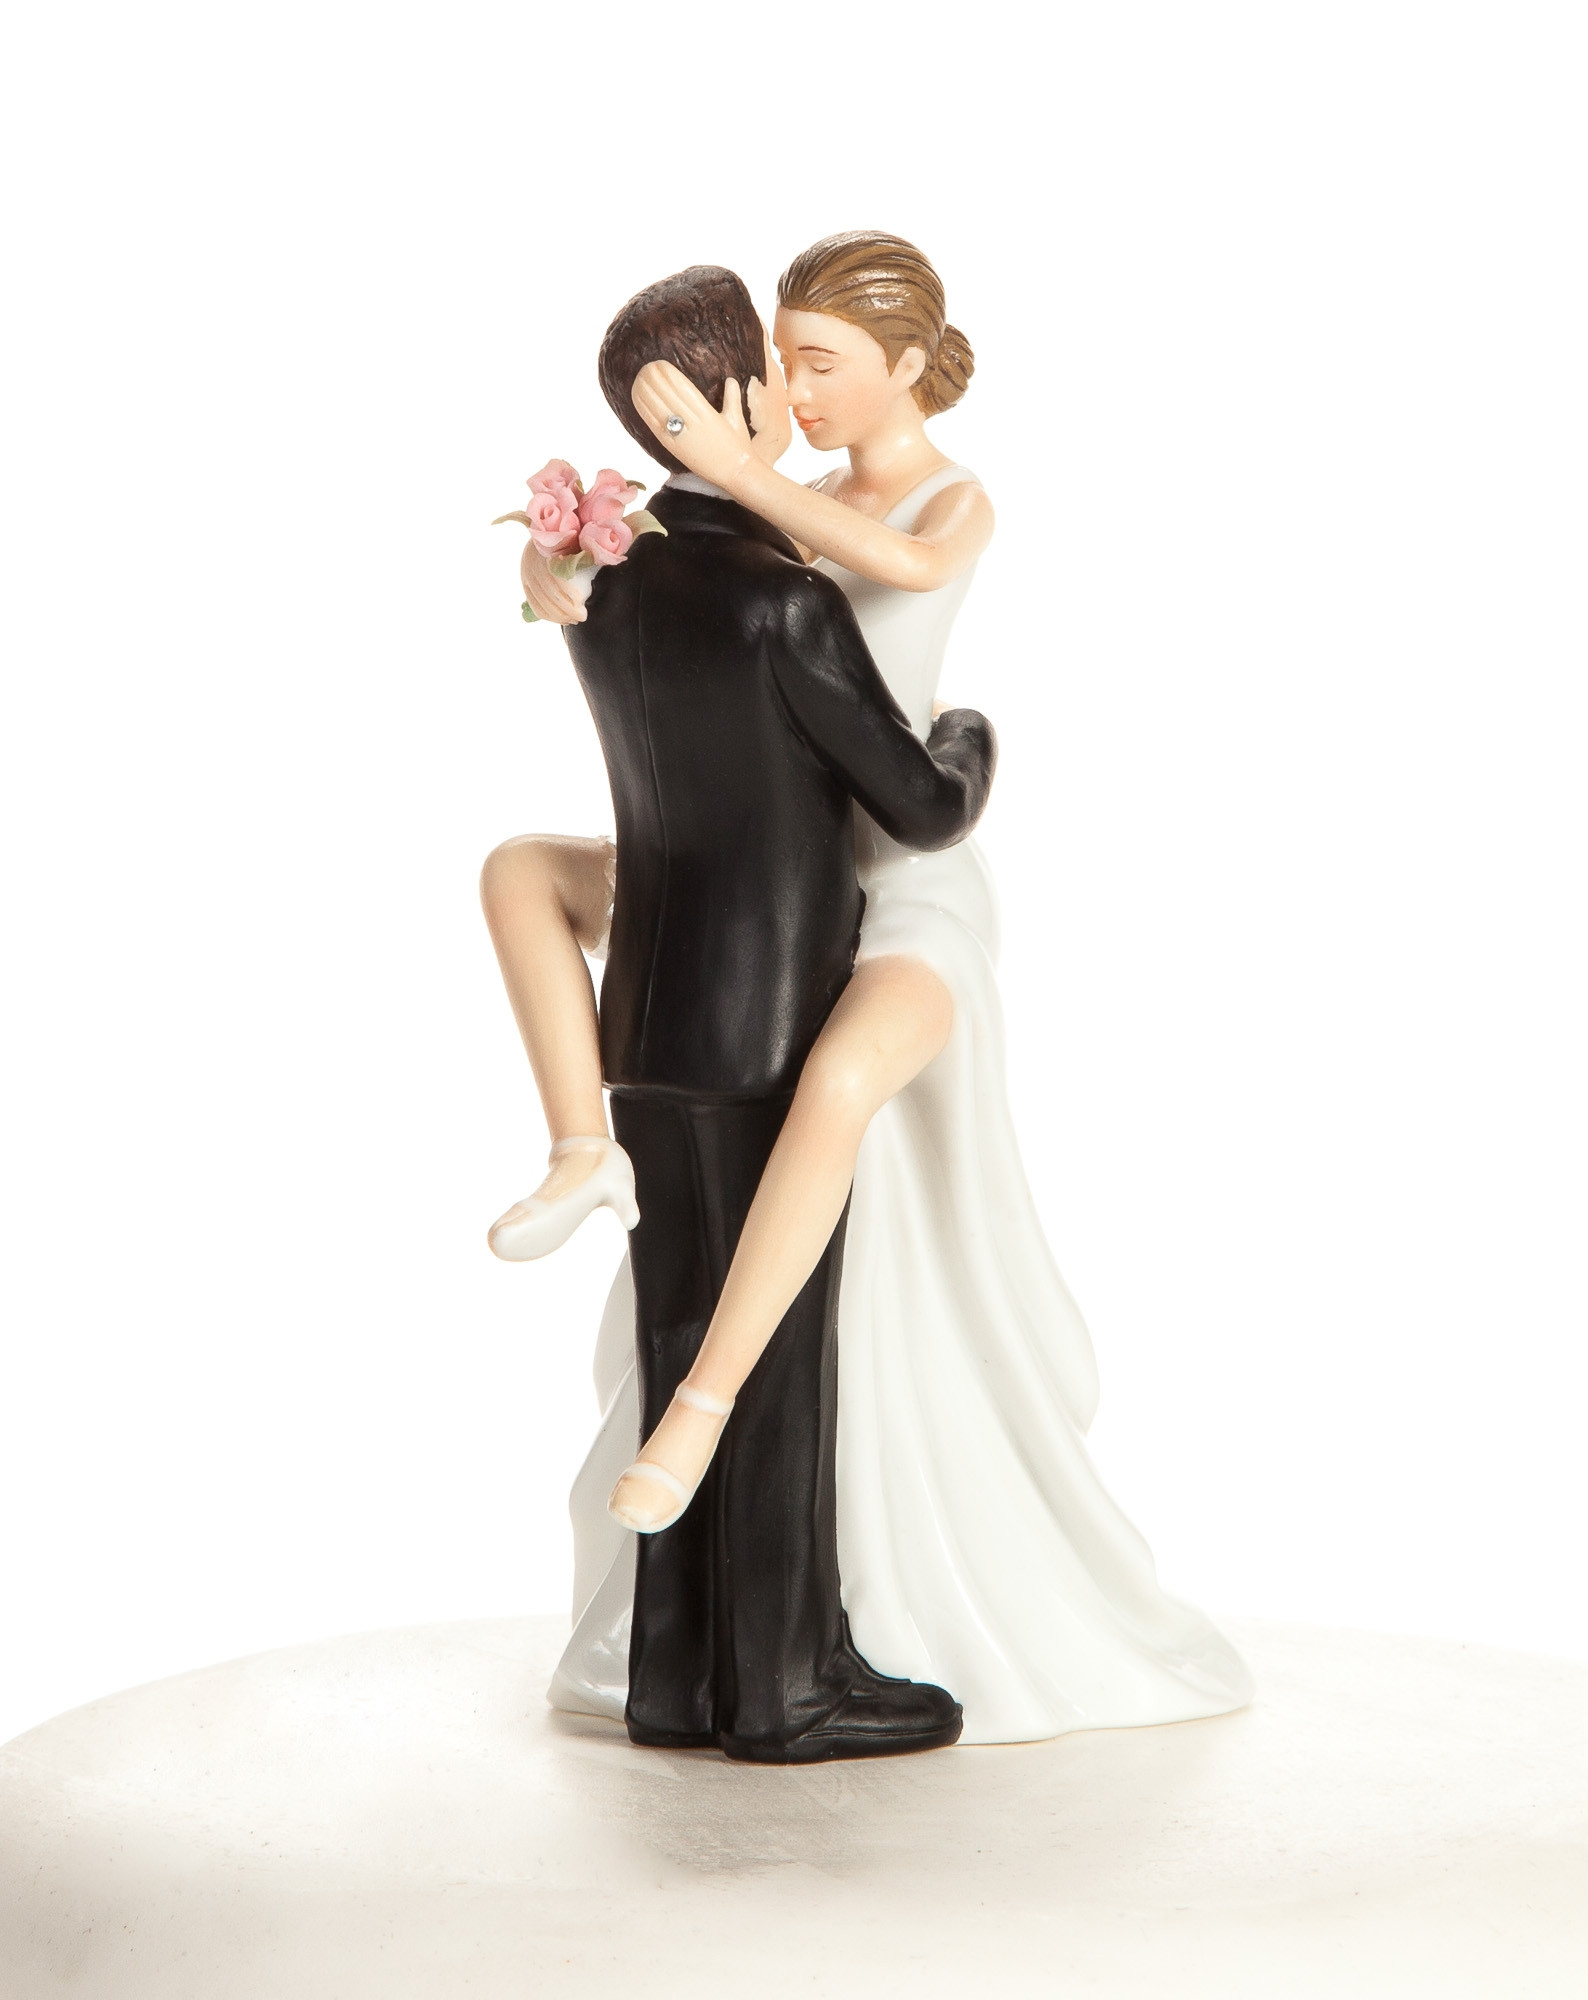 Bride And Groom Toppers For Wedding Cakes  If You re too Bored with The Ordinary Toppers Check These